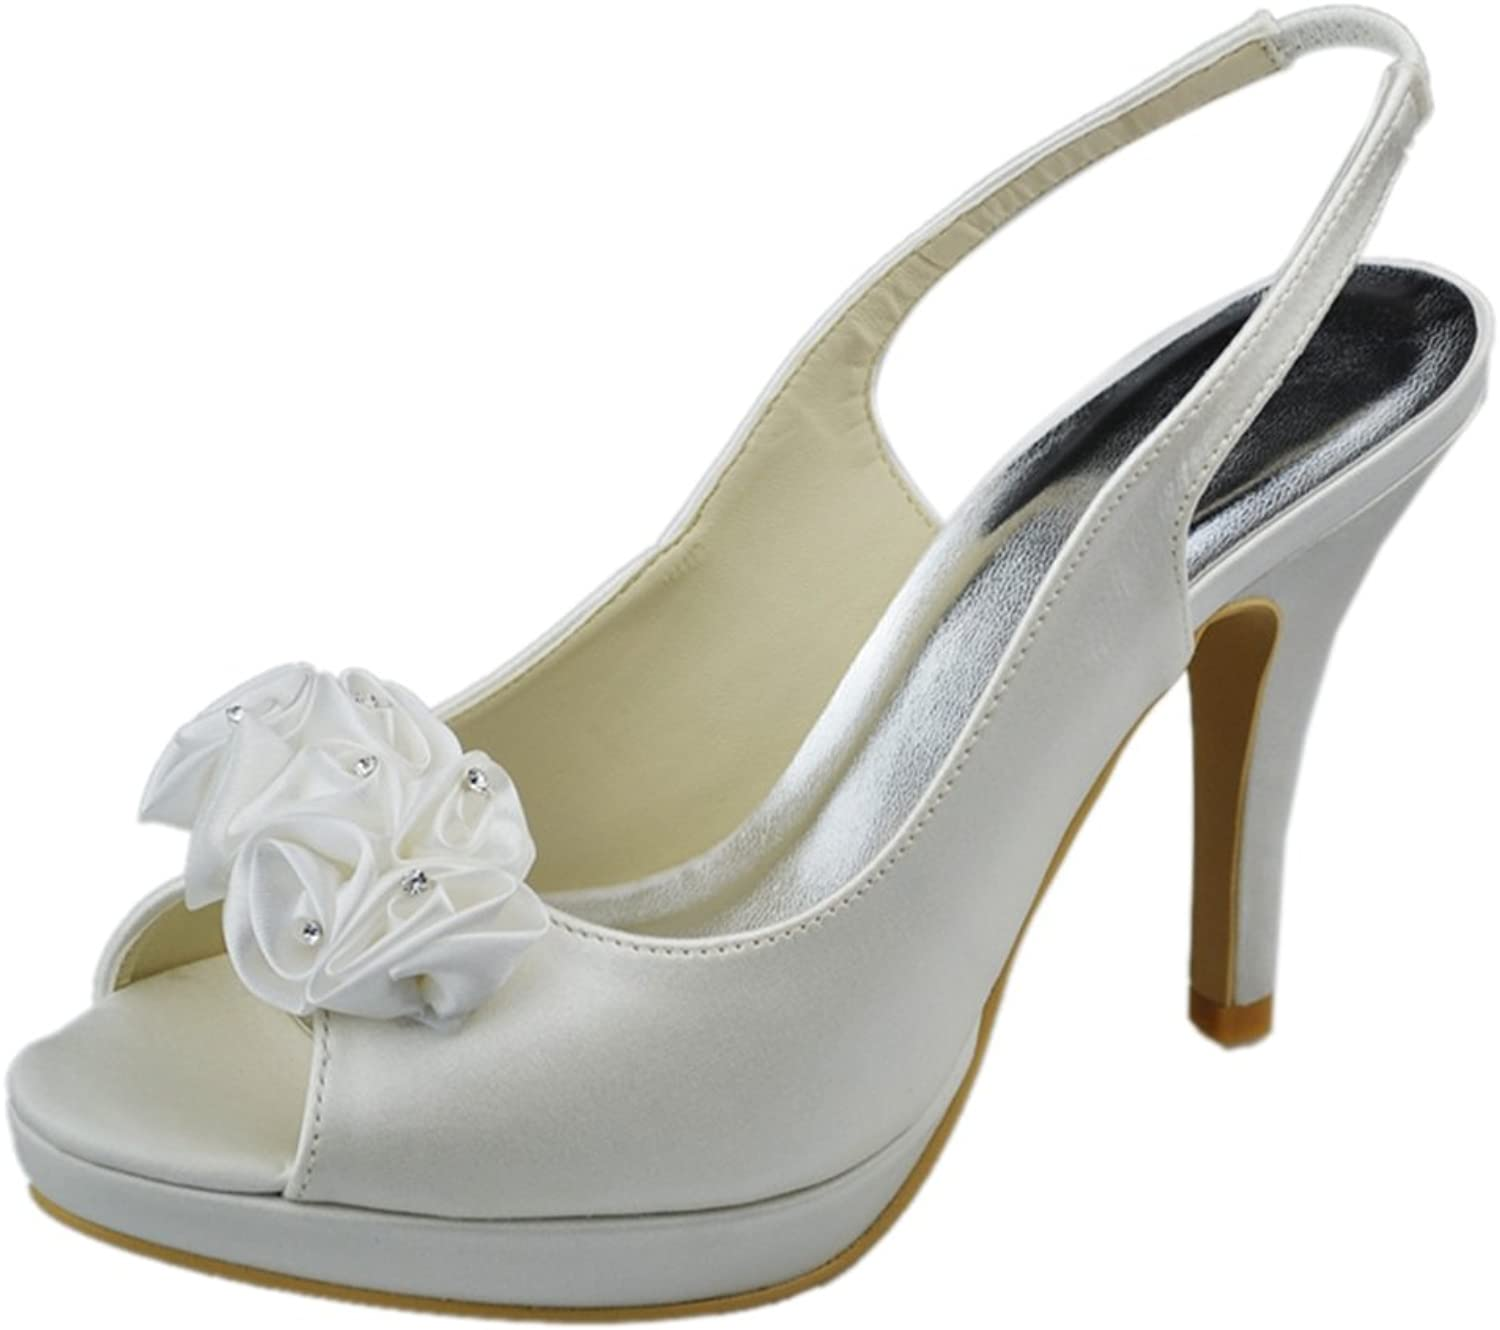 Minitoo GYAYL217 Womens Stiletto Heel Open Toe Satin Evening Party Bridal Wedding Strappy shoes